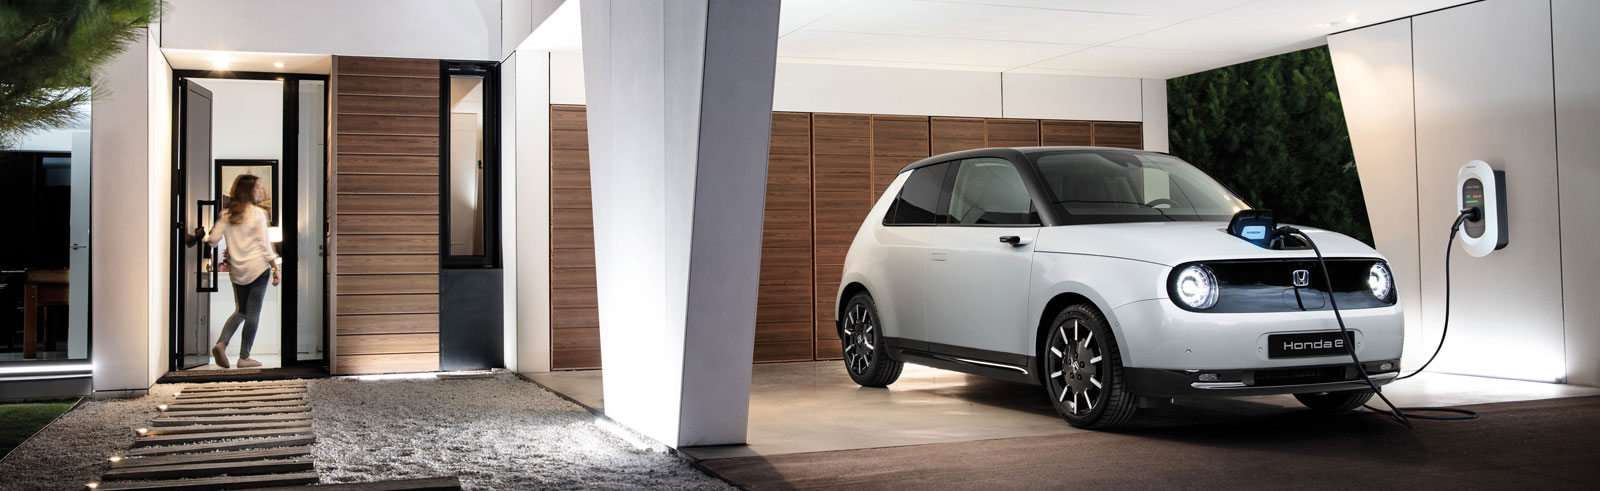 Honda unveiled the e:PROGRESS - its first commercial Energy Management service